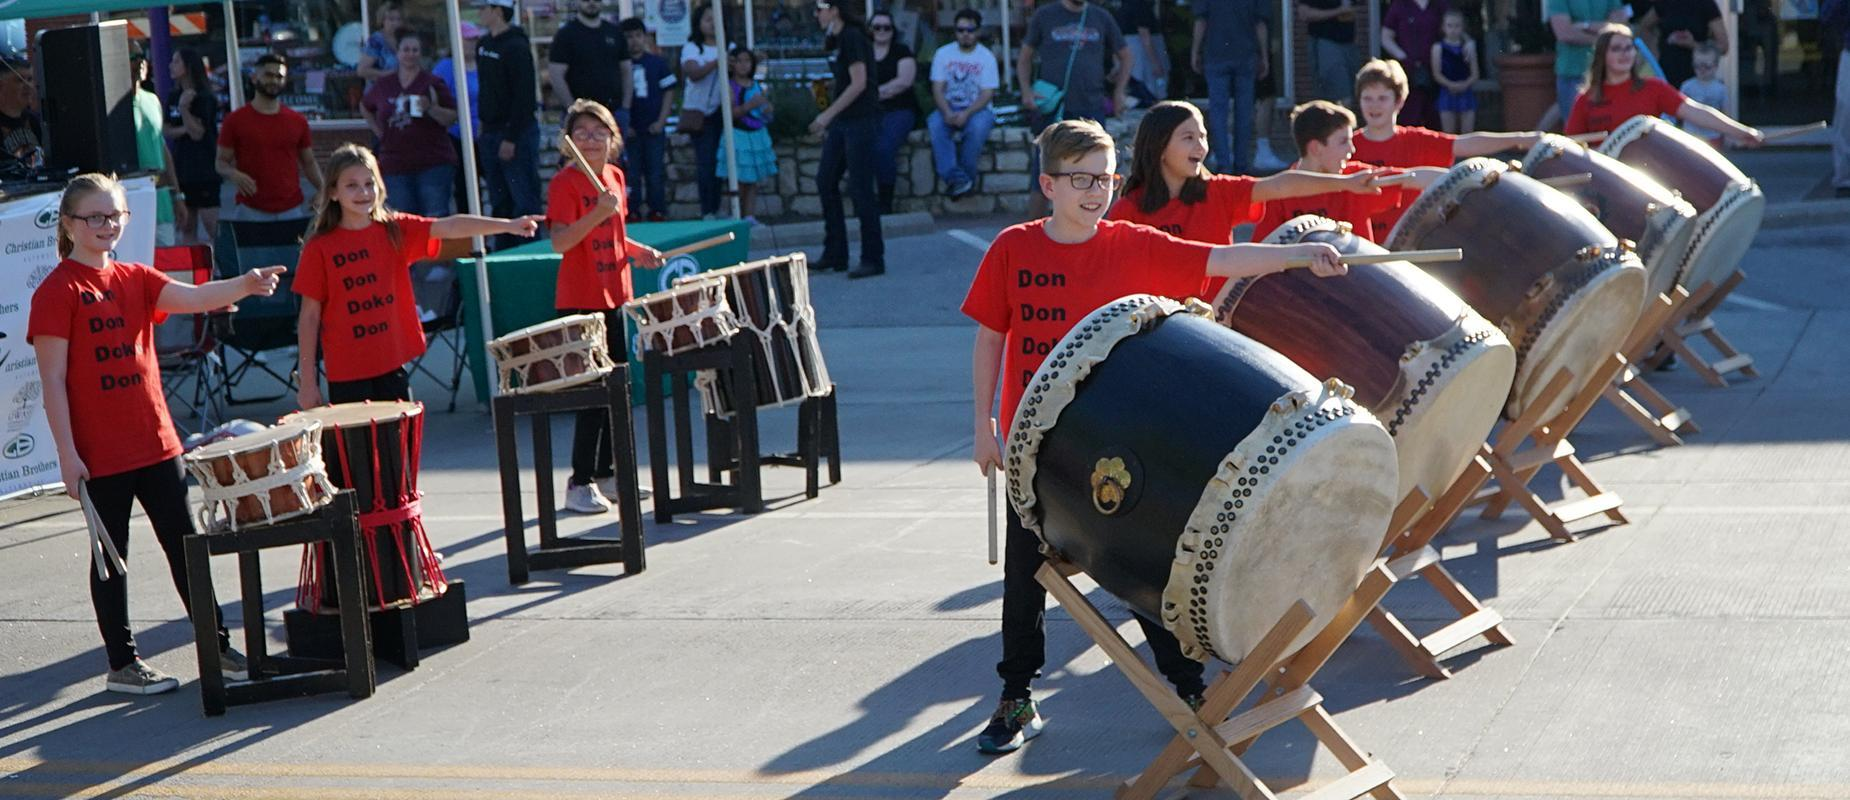 Elementary school students playing drums